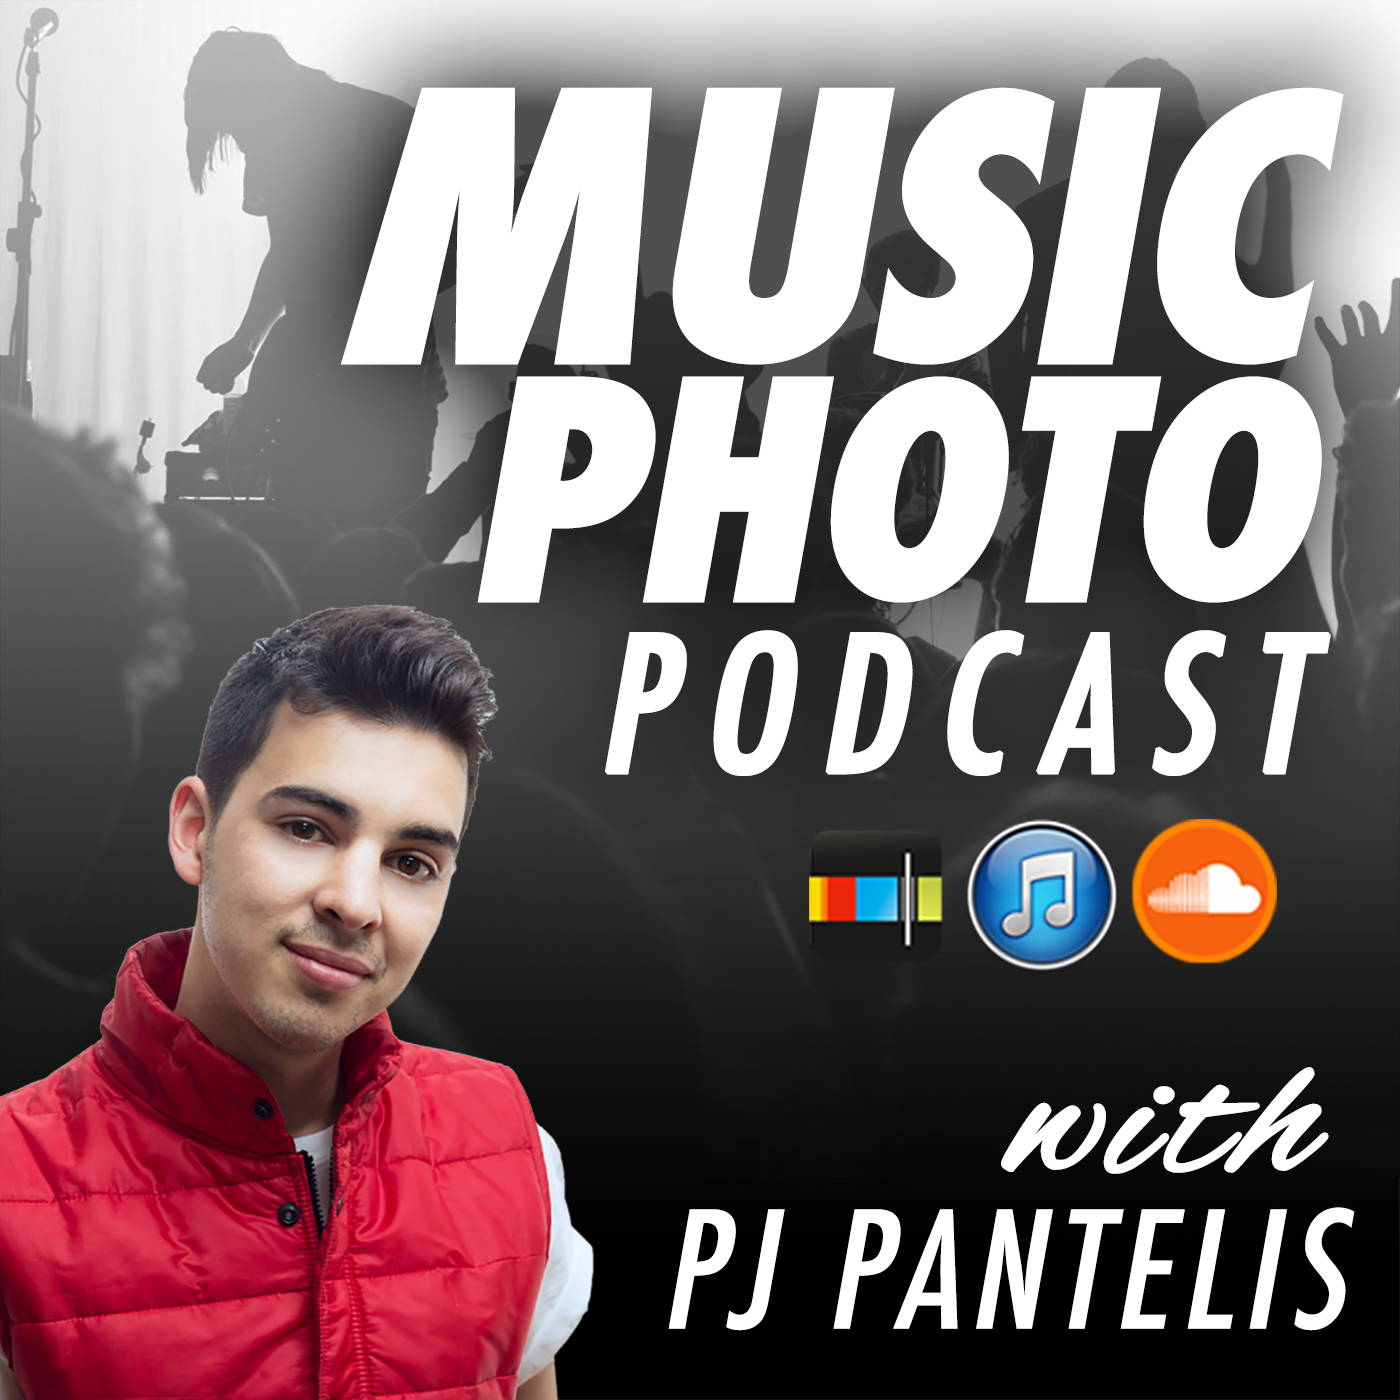 The Music Photo Podcast - BigPants Photo